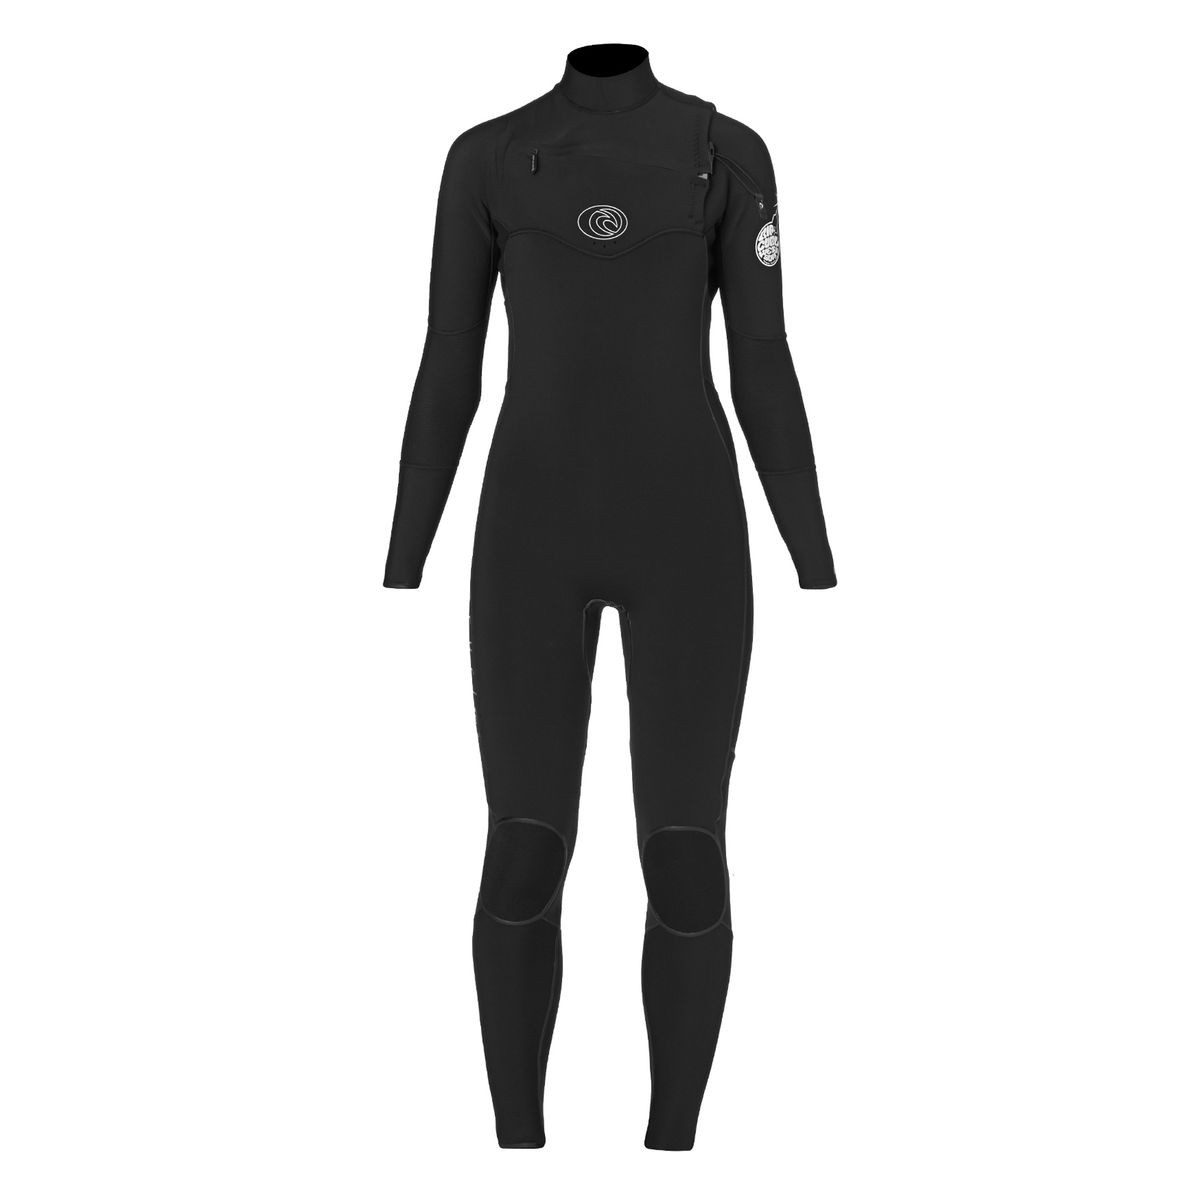 Rip Curl Womens Flashbomb 5/3mm 2017 Chest Zip Wetsuit - Black